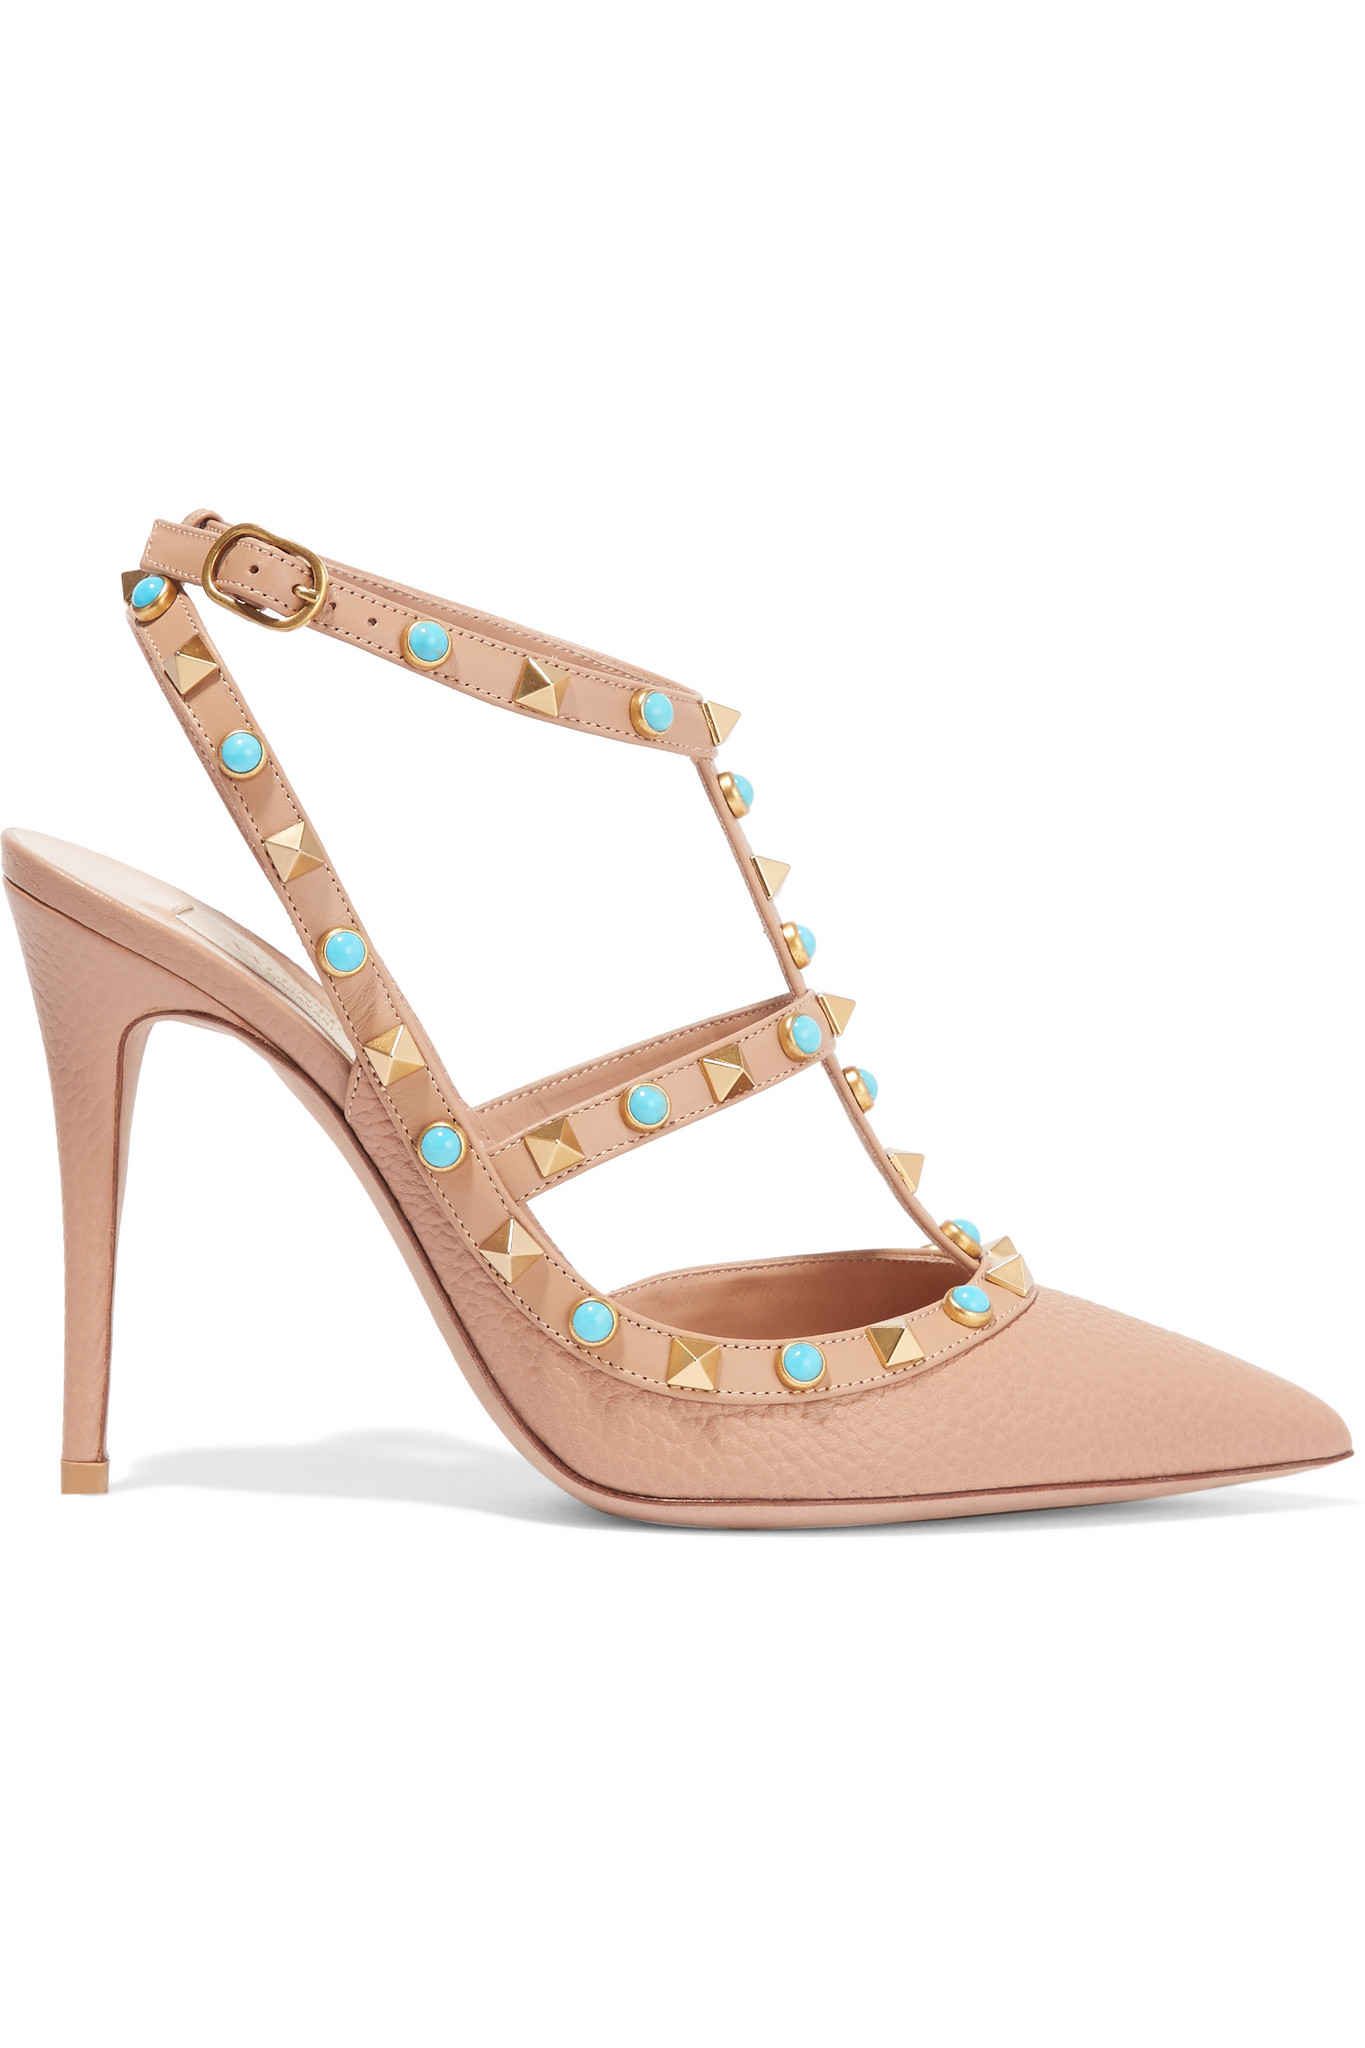 bb5e15609775 Lyst - Valentino Rockstud Embellished Leather Pumps in Natural